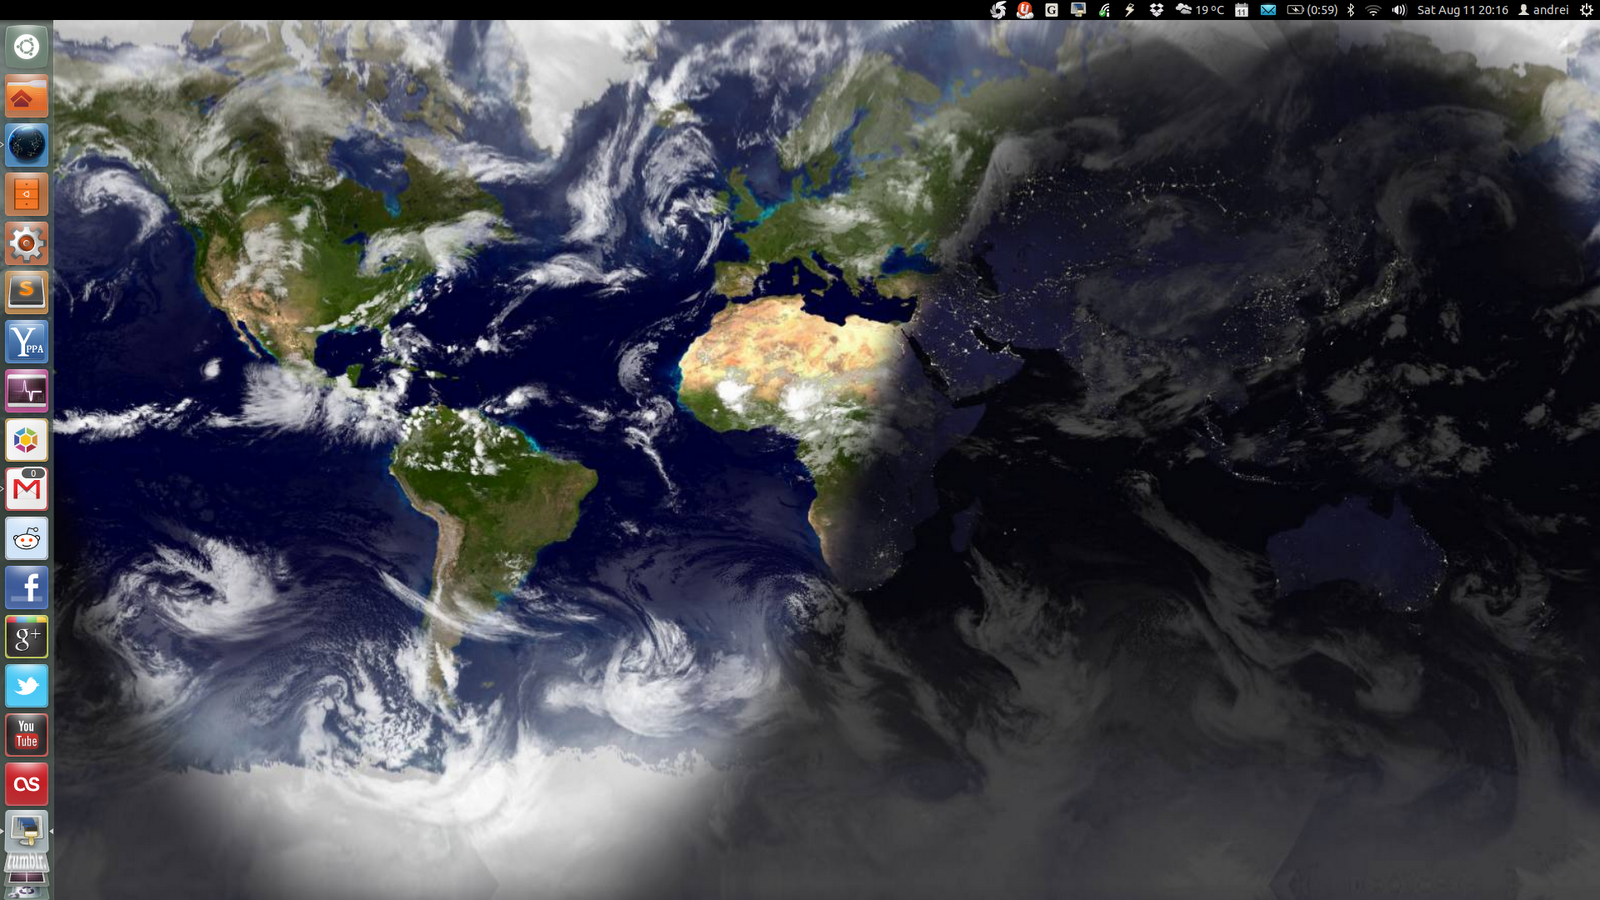 Live Wallpaper Of Earth